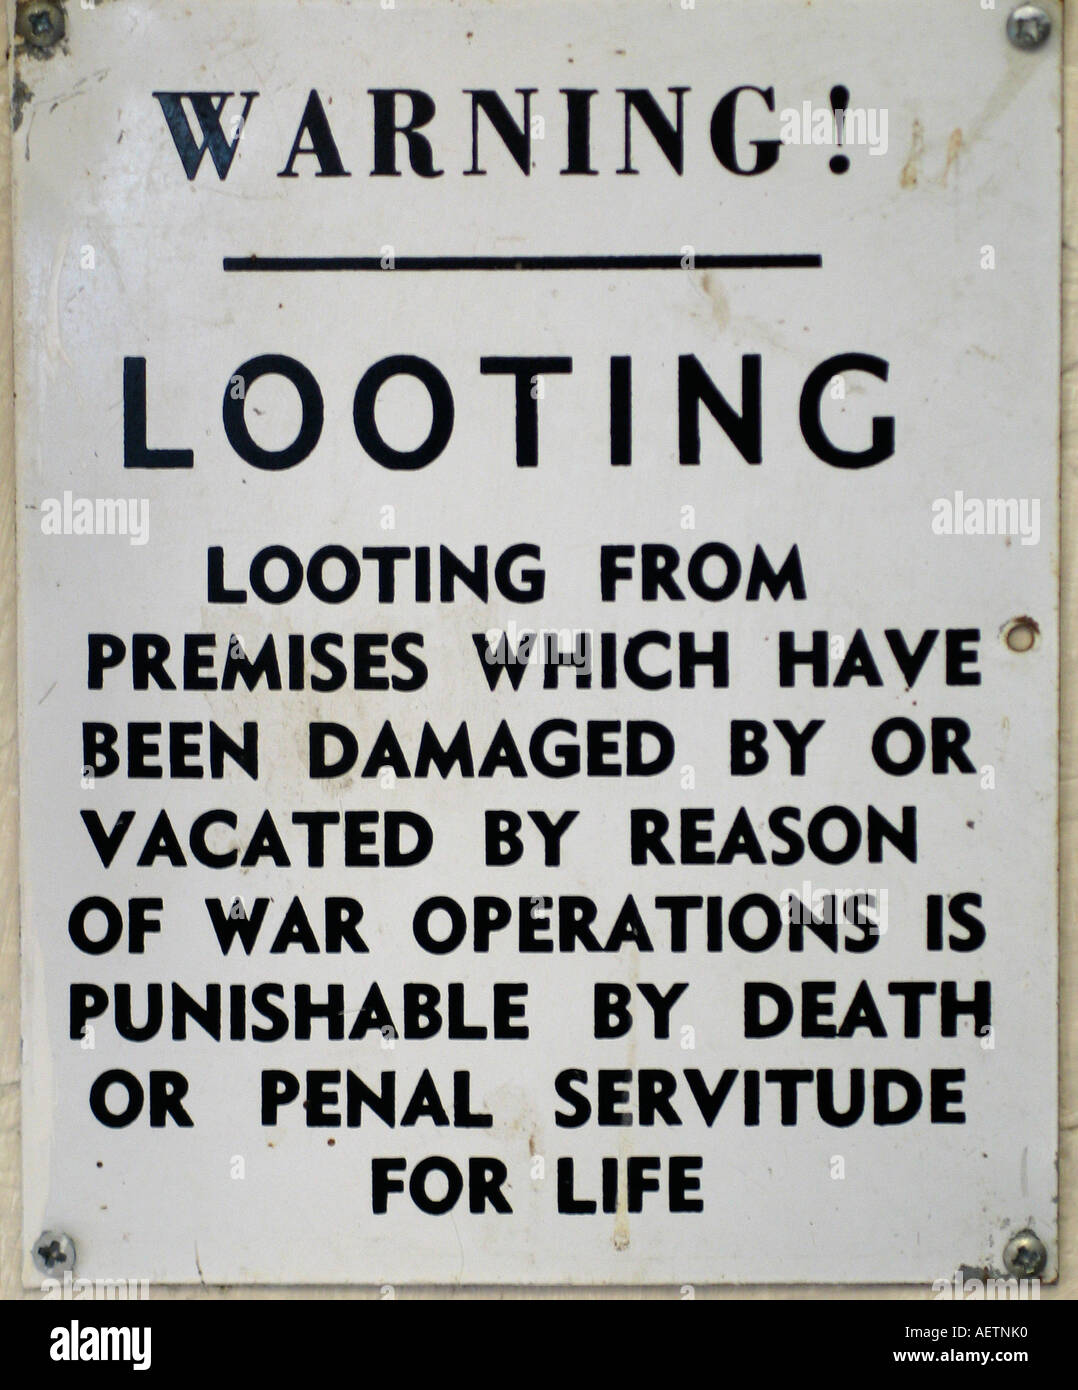 World War 2 sign warning against looting Stock Photo - Alamy